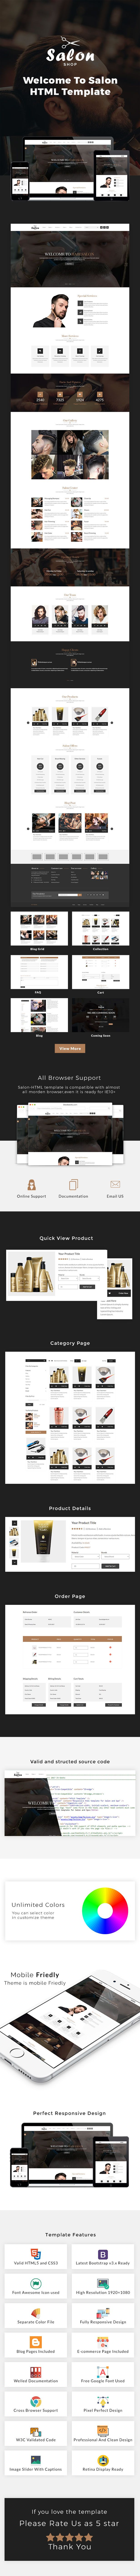 The Salon - Responsive html template for Salon and Spa by DESIDEALS4U